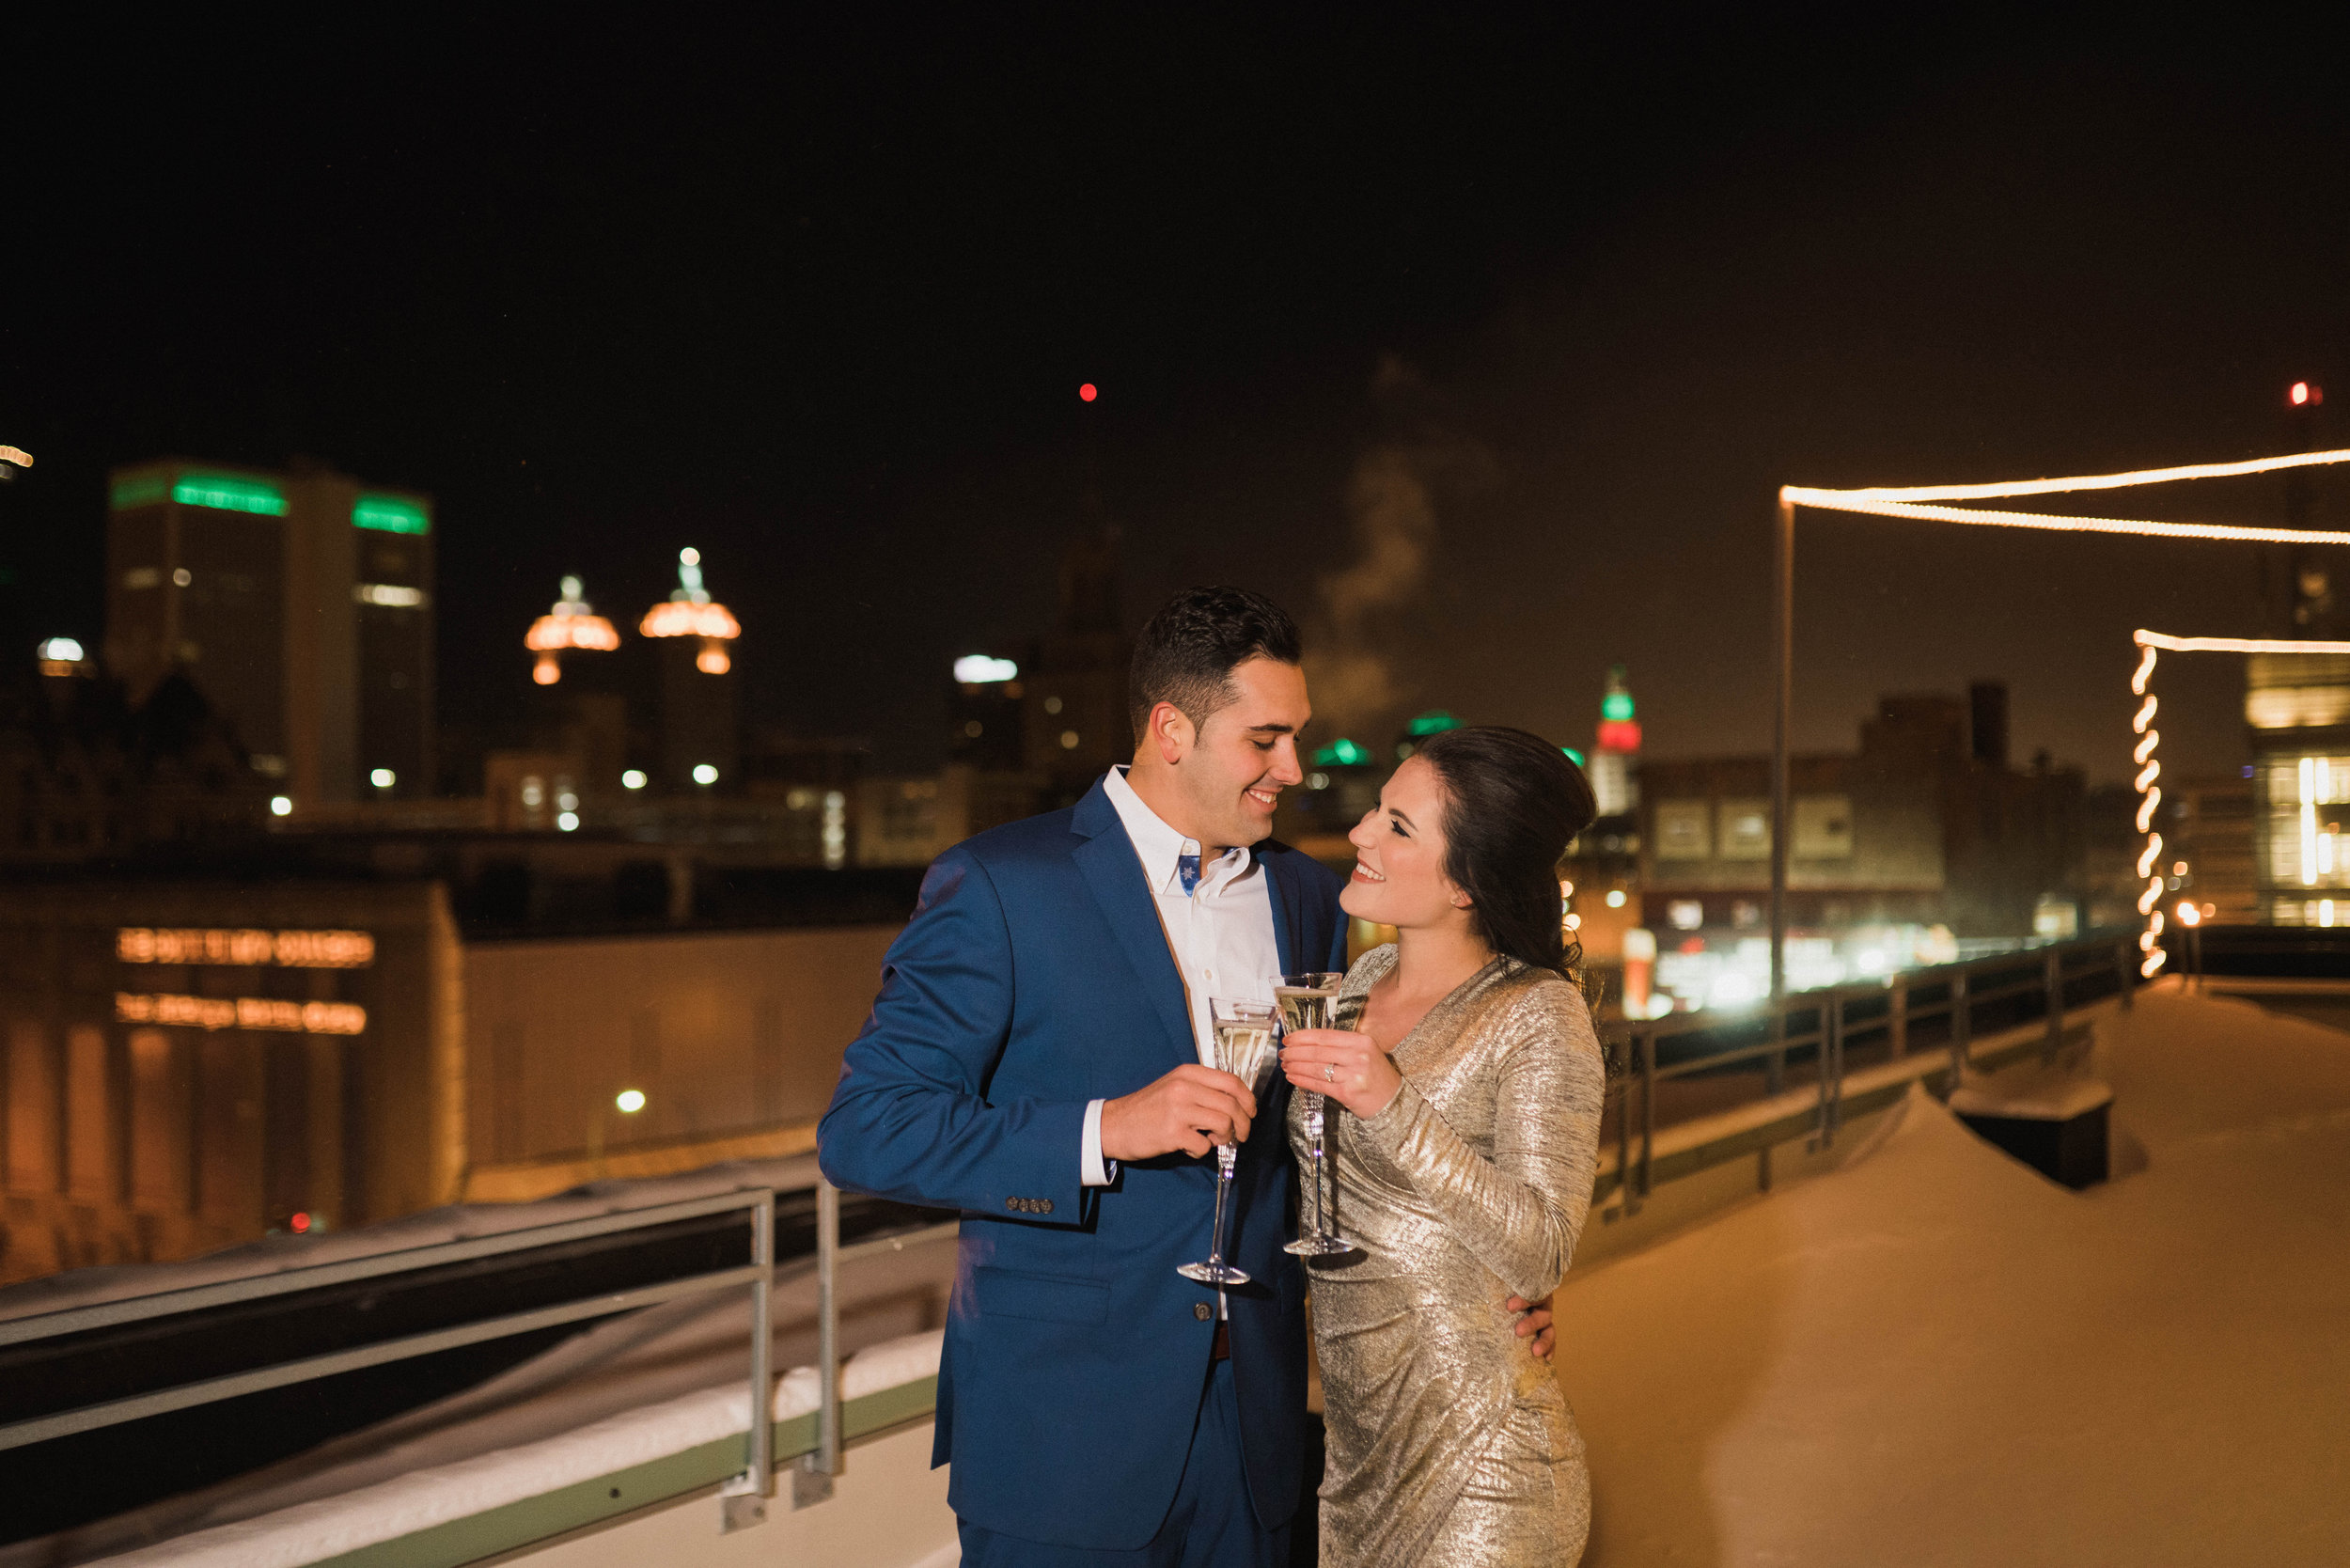 Sara and Mike Engagement Photography in Downtown Buffalo by Stefan Ludwig Photography-70.jpg